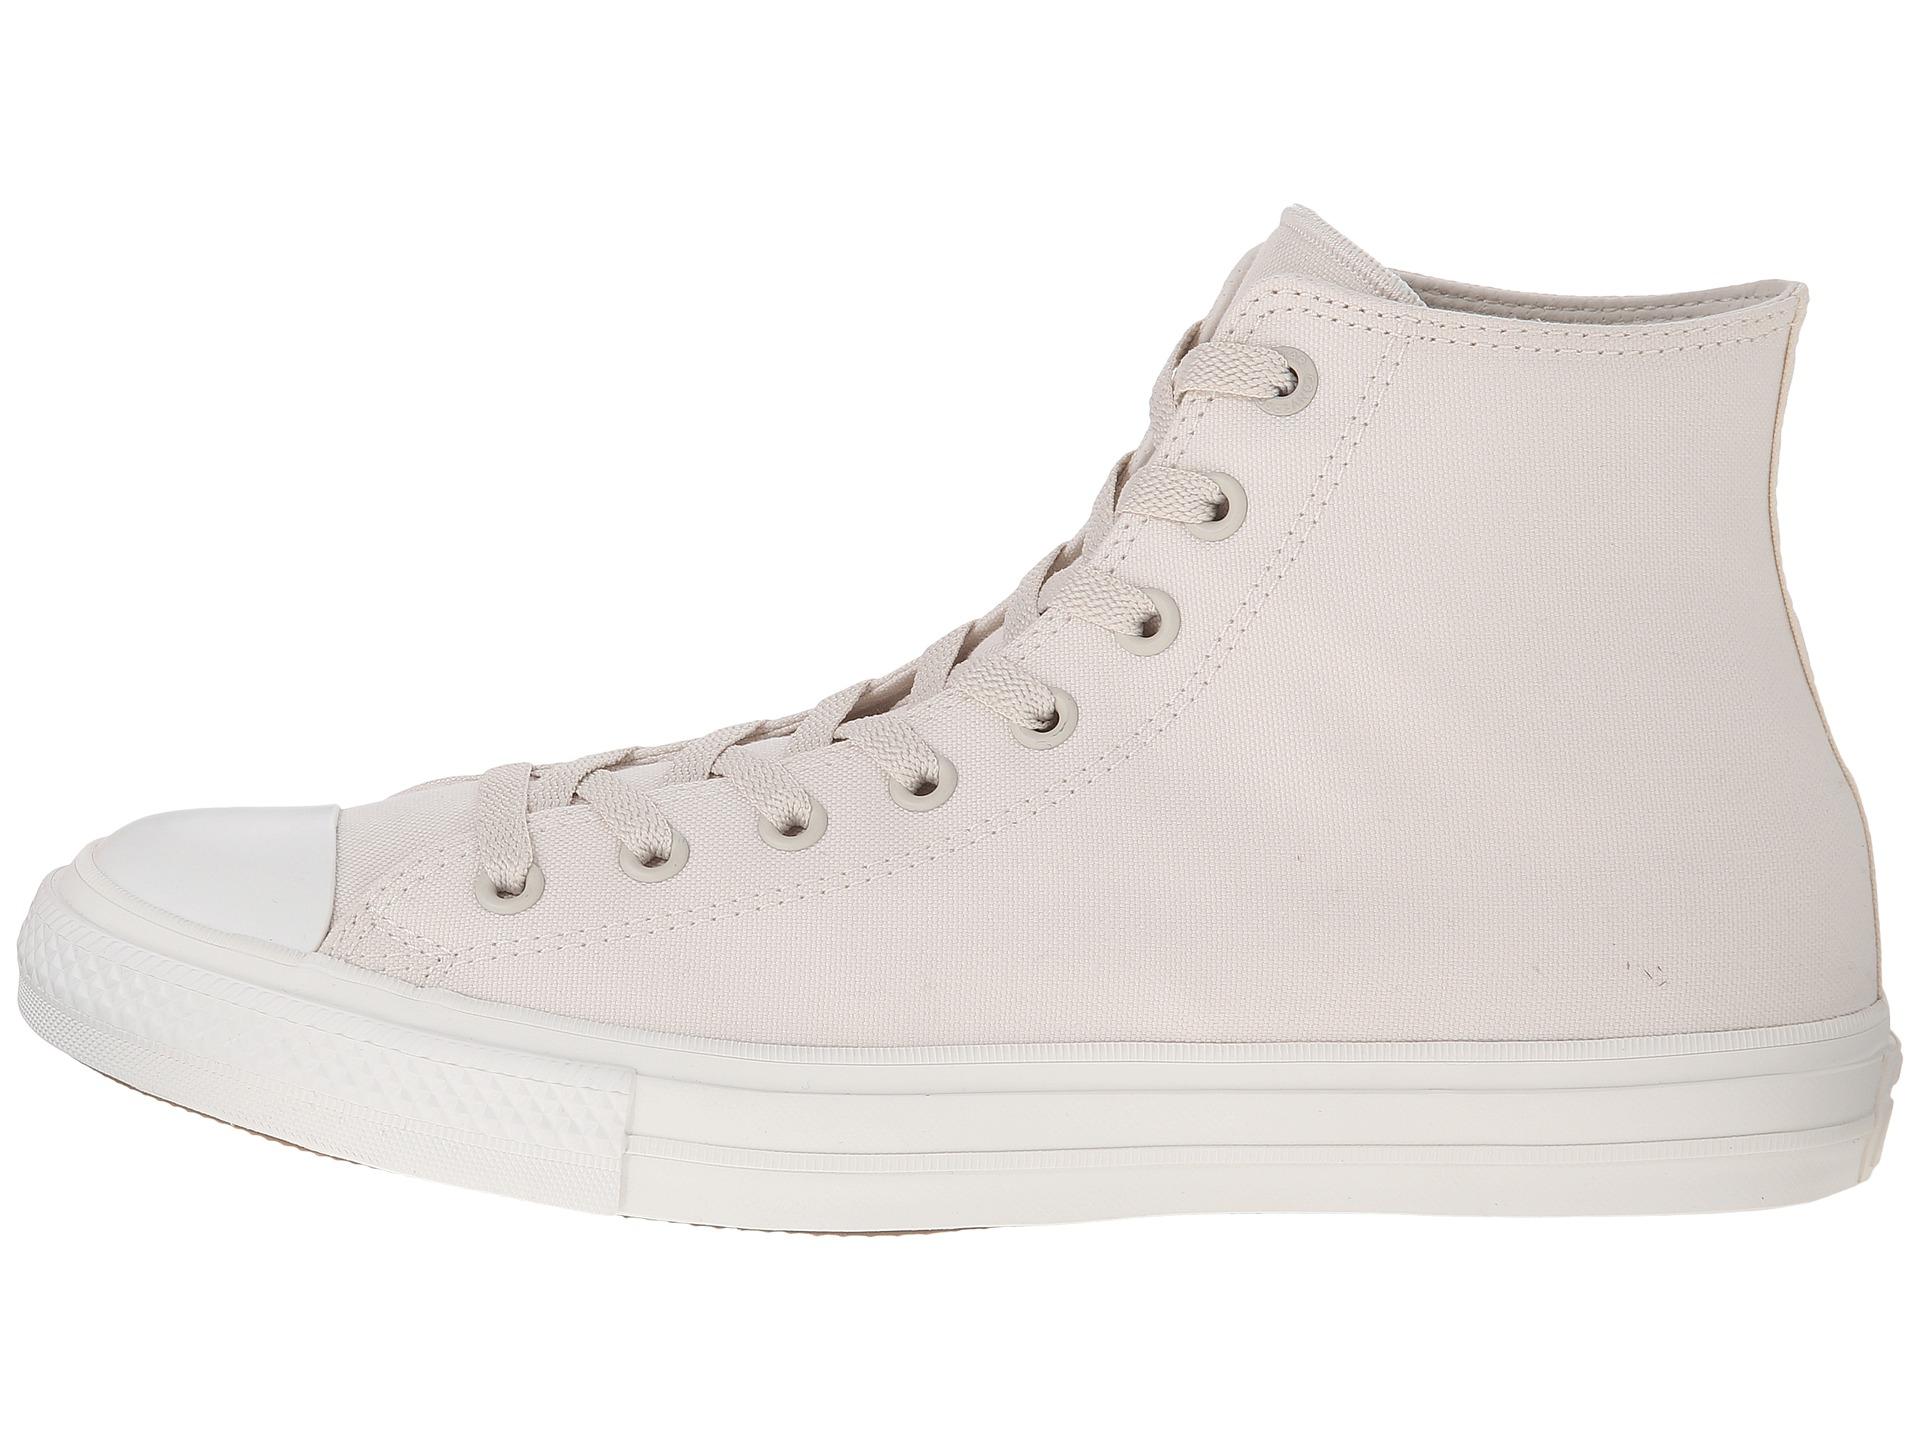 9bd4f68d6 Gallery. Previously sold at  Zappos · Women s Converse Chuck Taylor ...